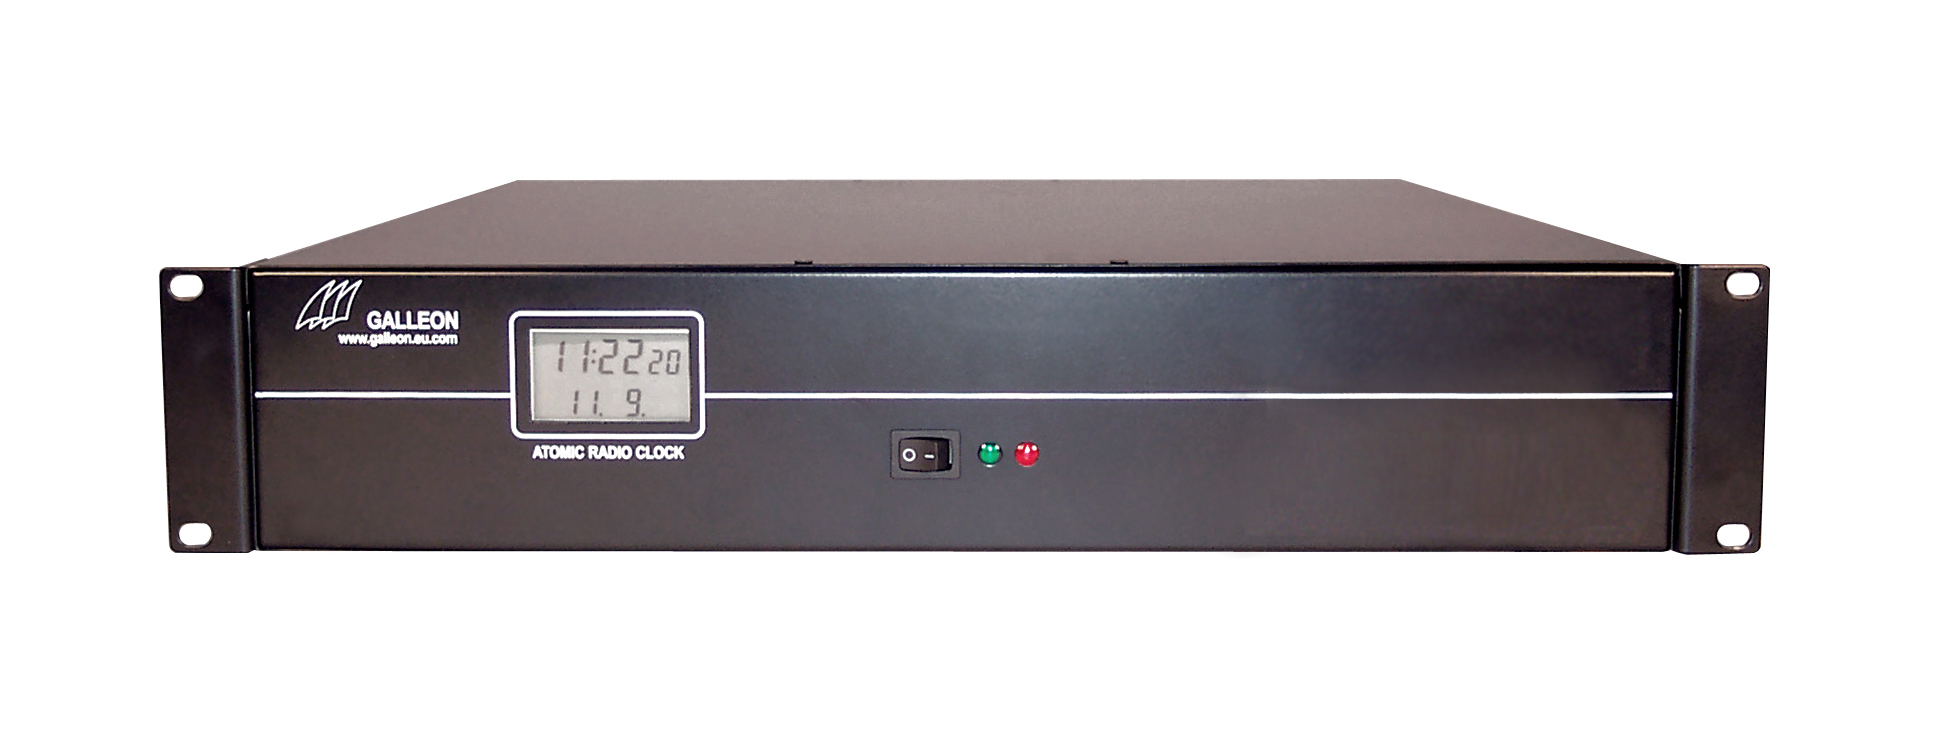 rack mount atomic clock